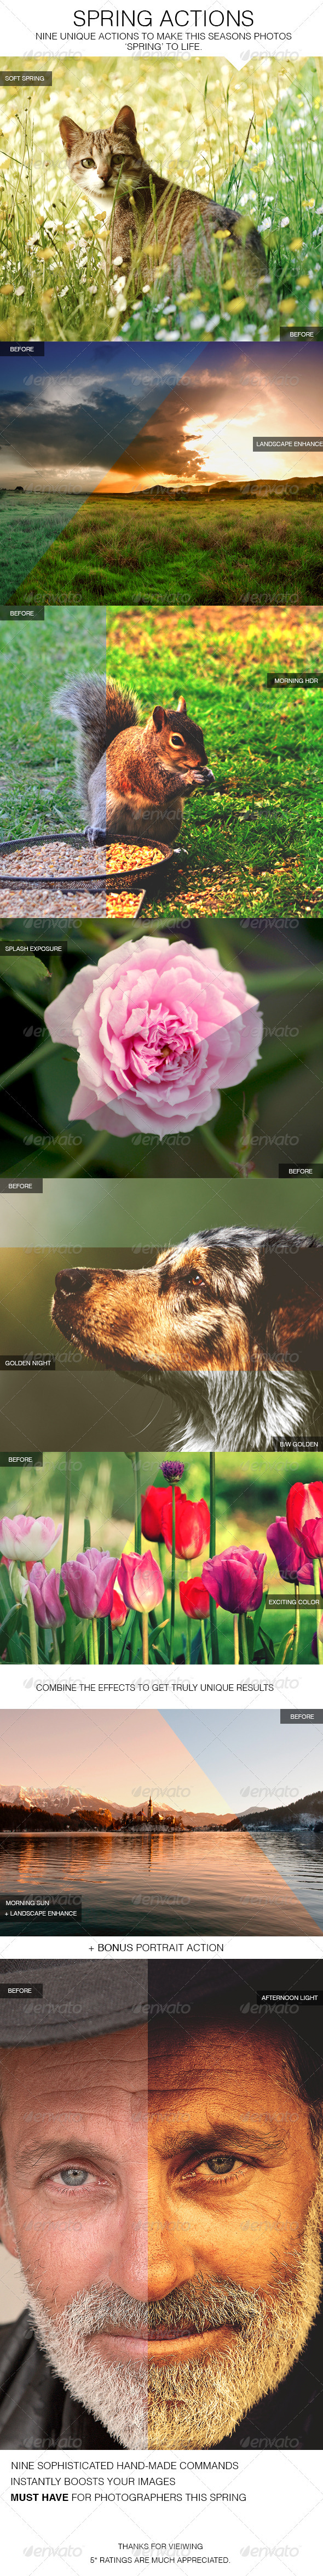 GraphicRiver Spring Actions 3654072